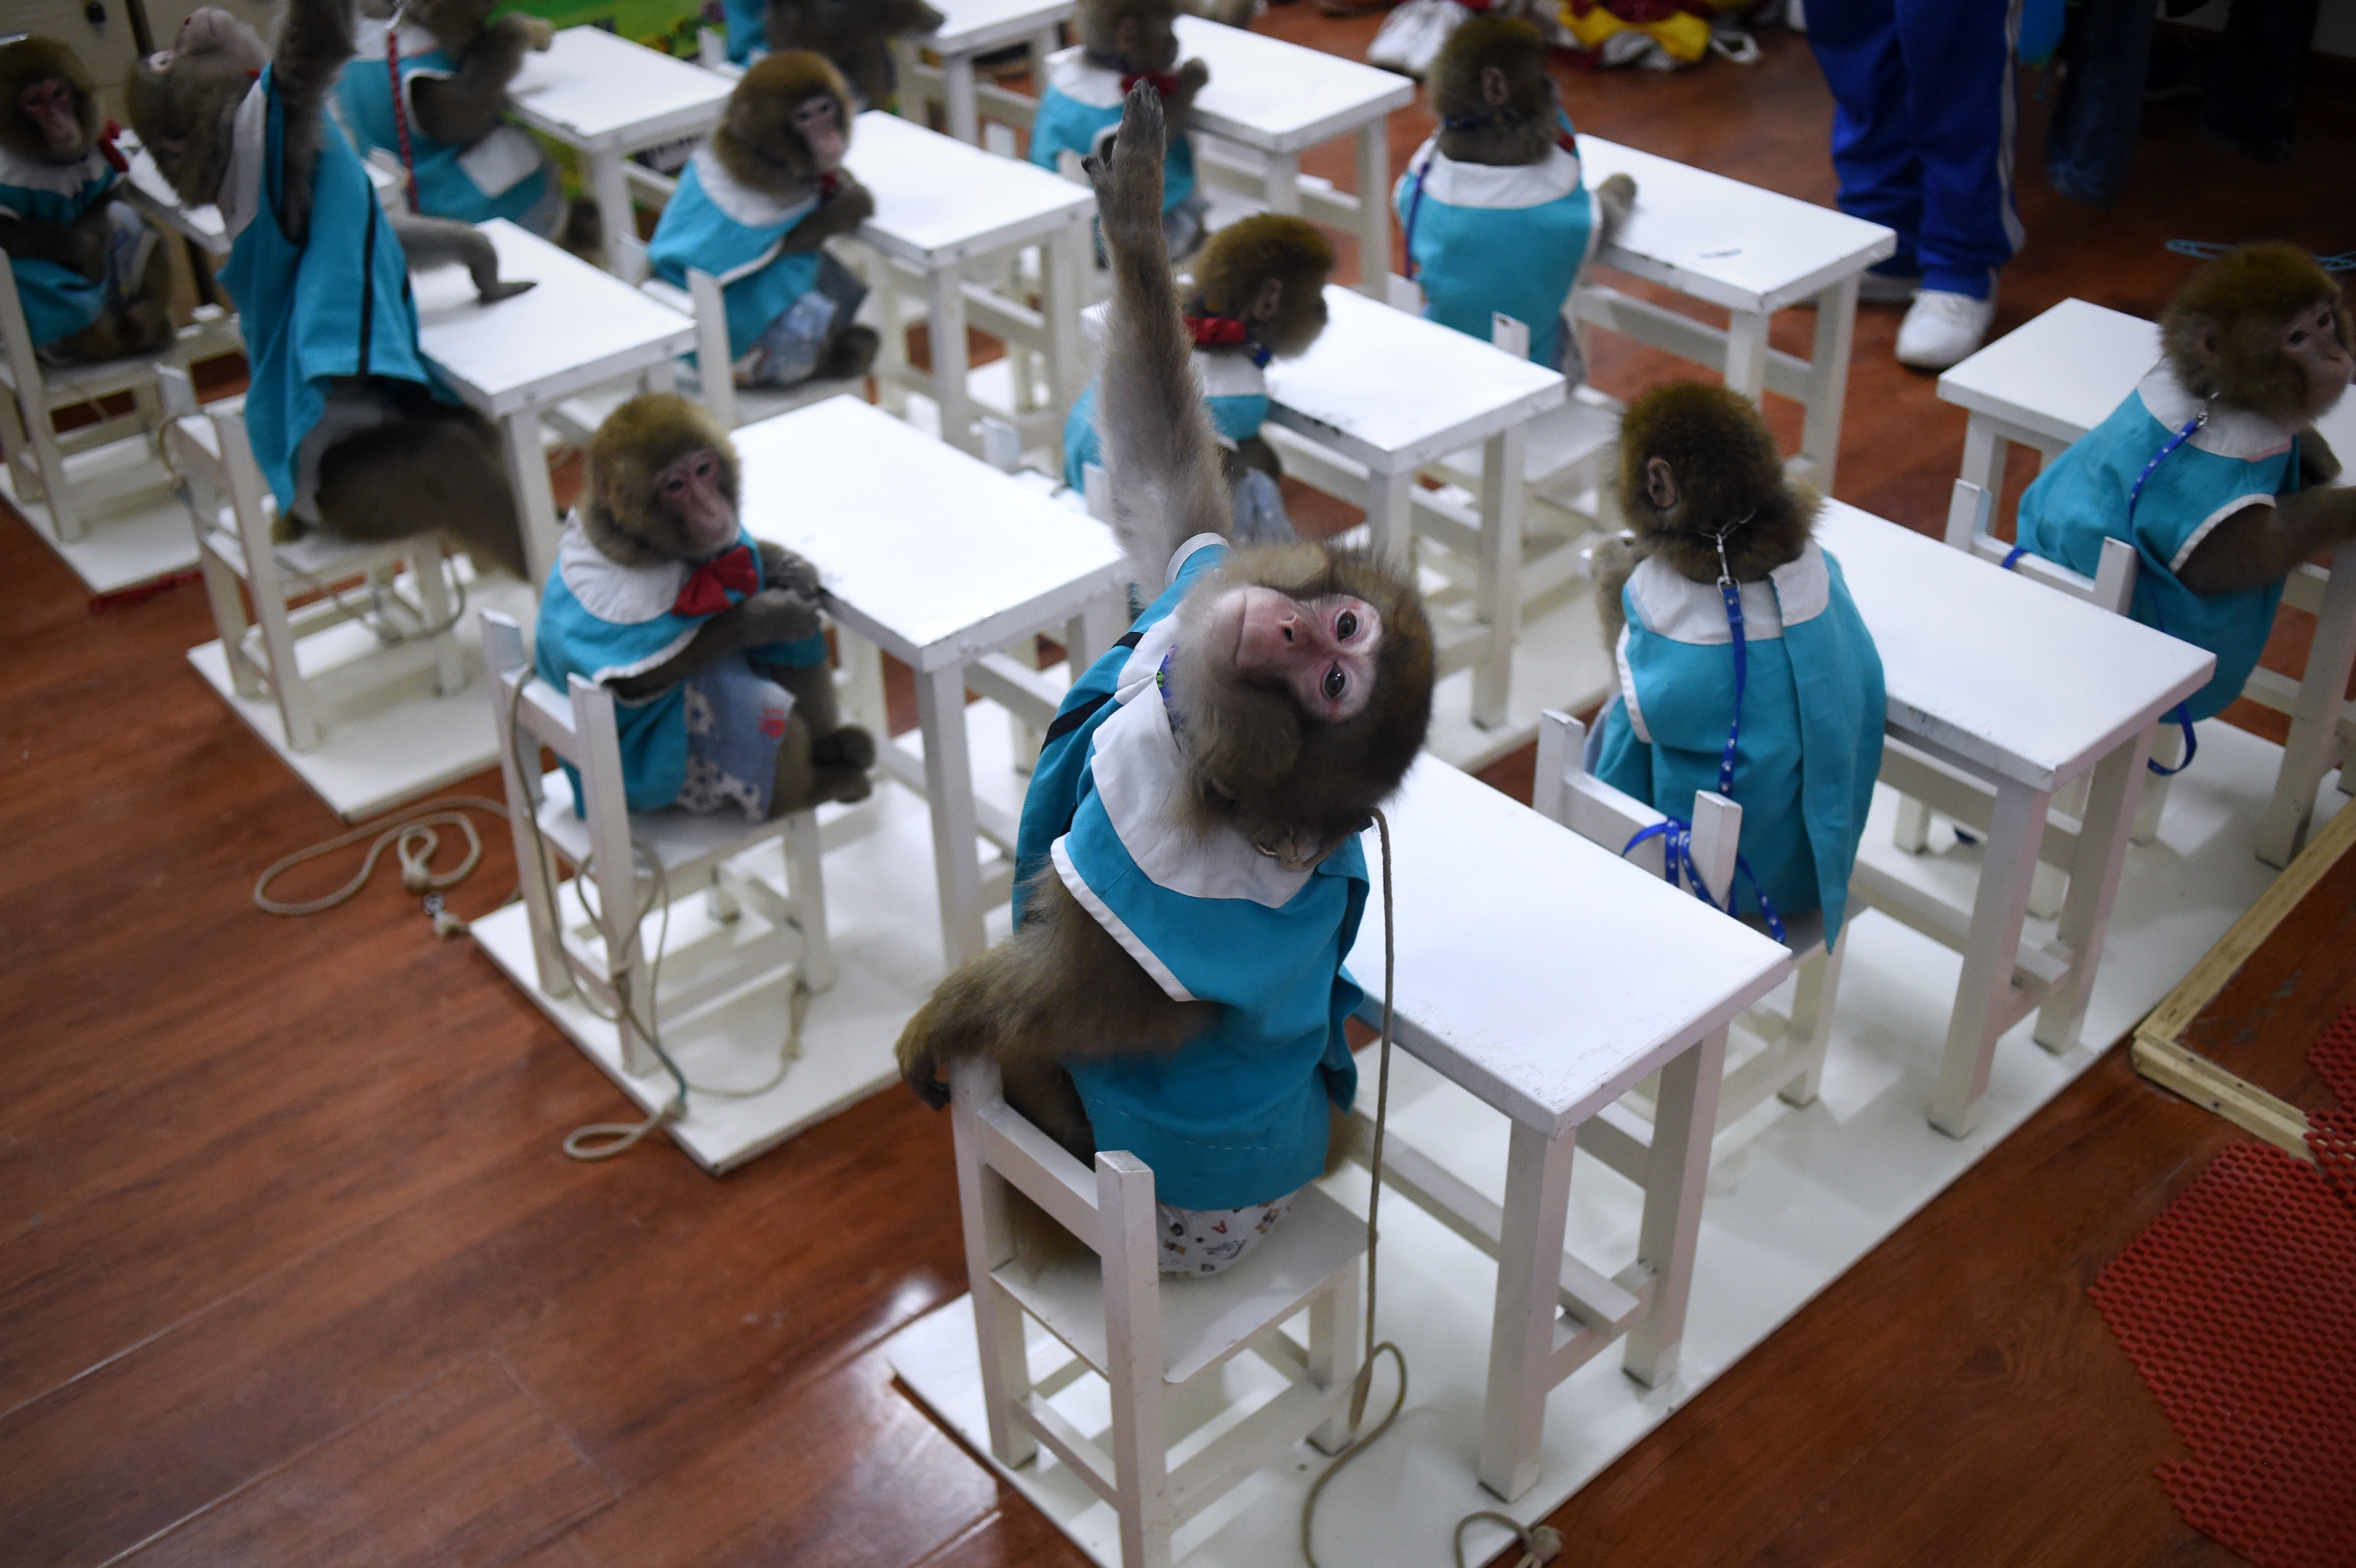 A monkey raises its hand in class at a monkey training school in a zoo in Dongying, China, on Jan. 26, 2016.